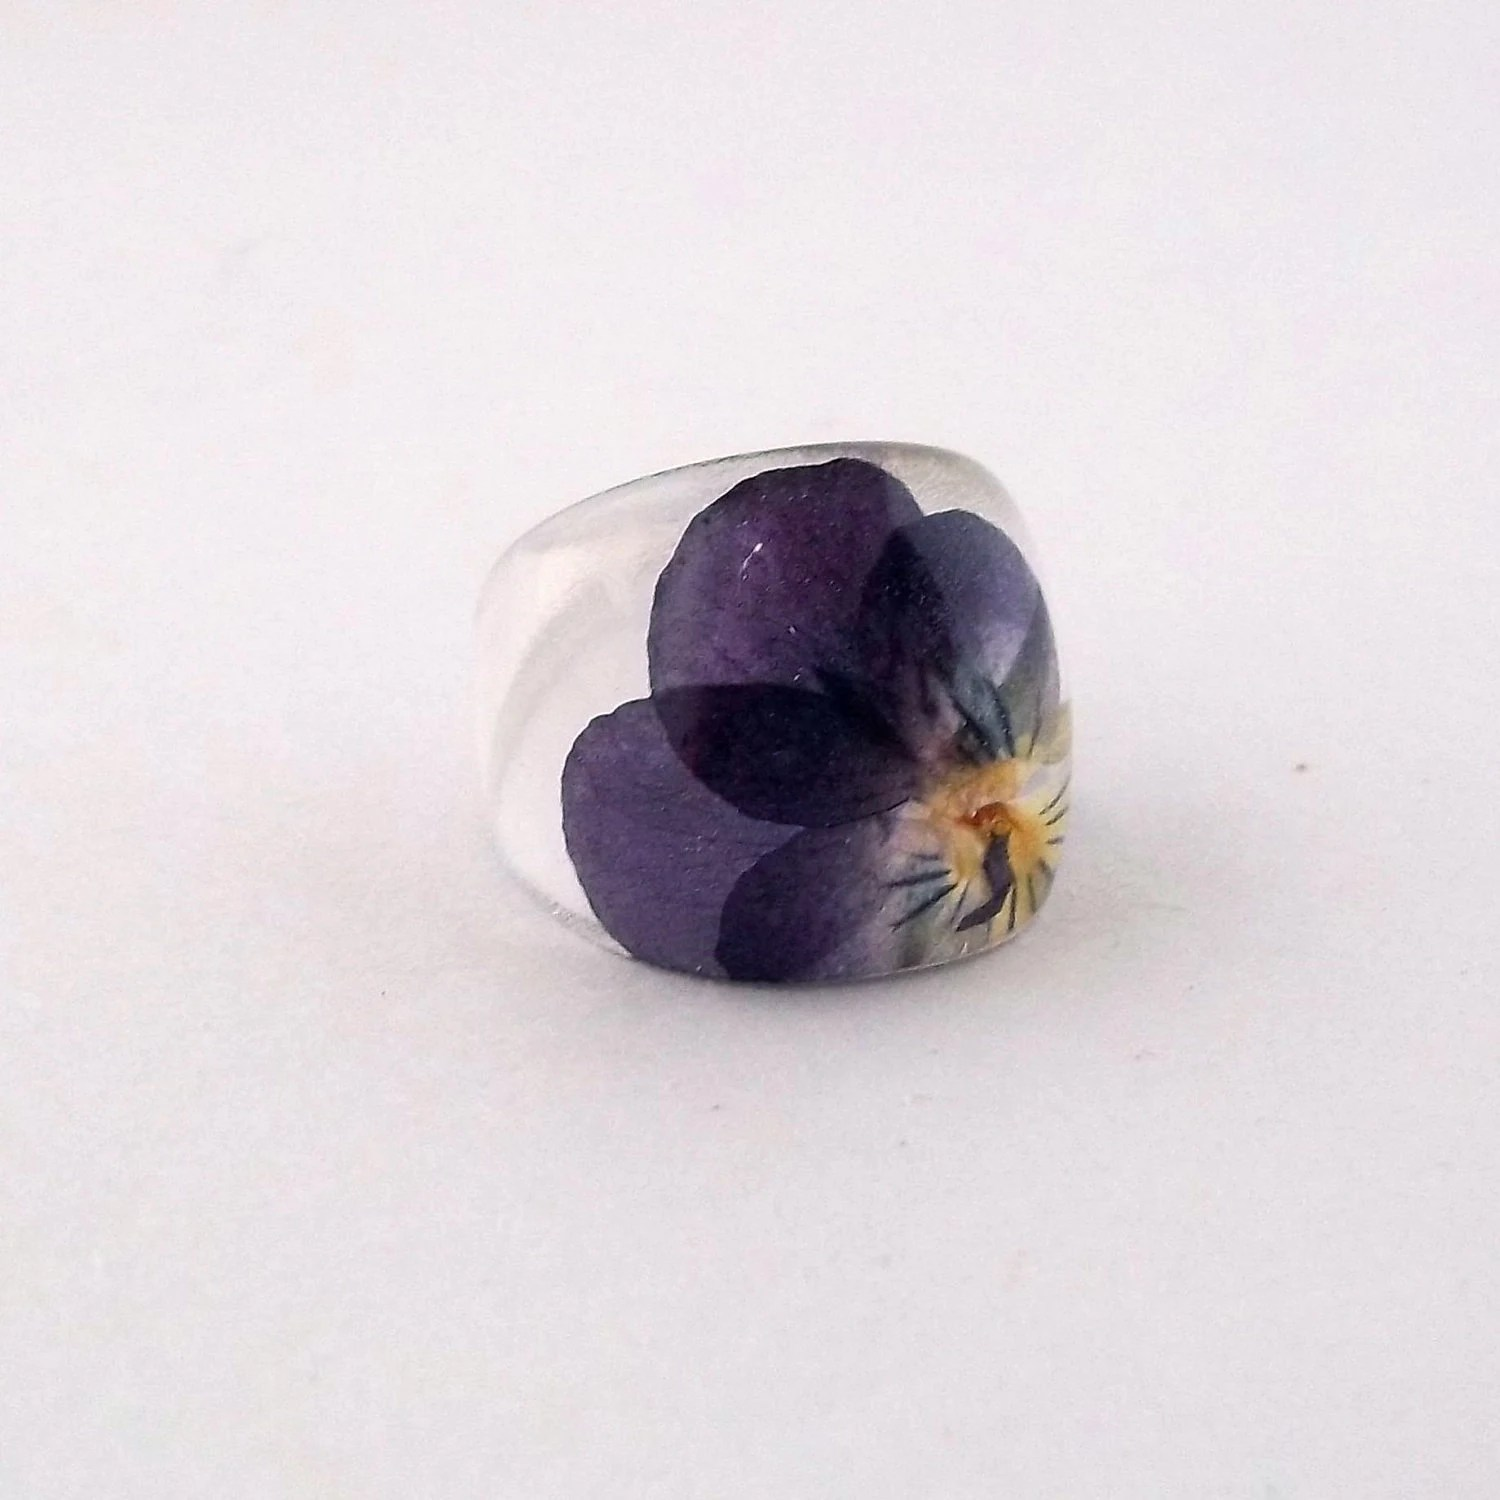 Purple Pansy Resin Ring.  Pansy Violet Viola Resin Ring.  Pressed Flower Ring.  Handmade Jewelry with Real Flowers - Purple Yellow Violet - SpottedDogAsheville